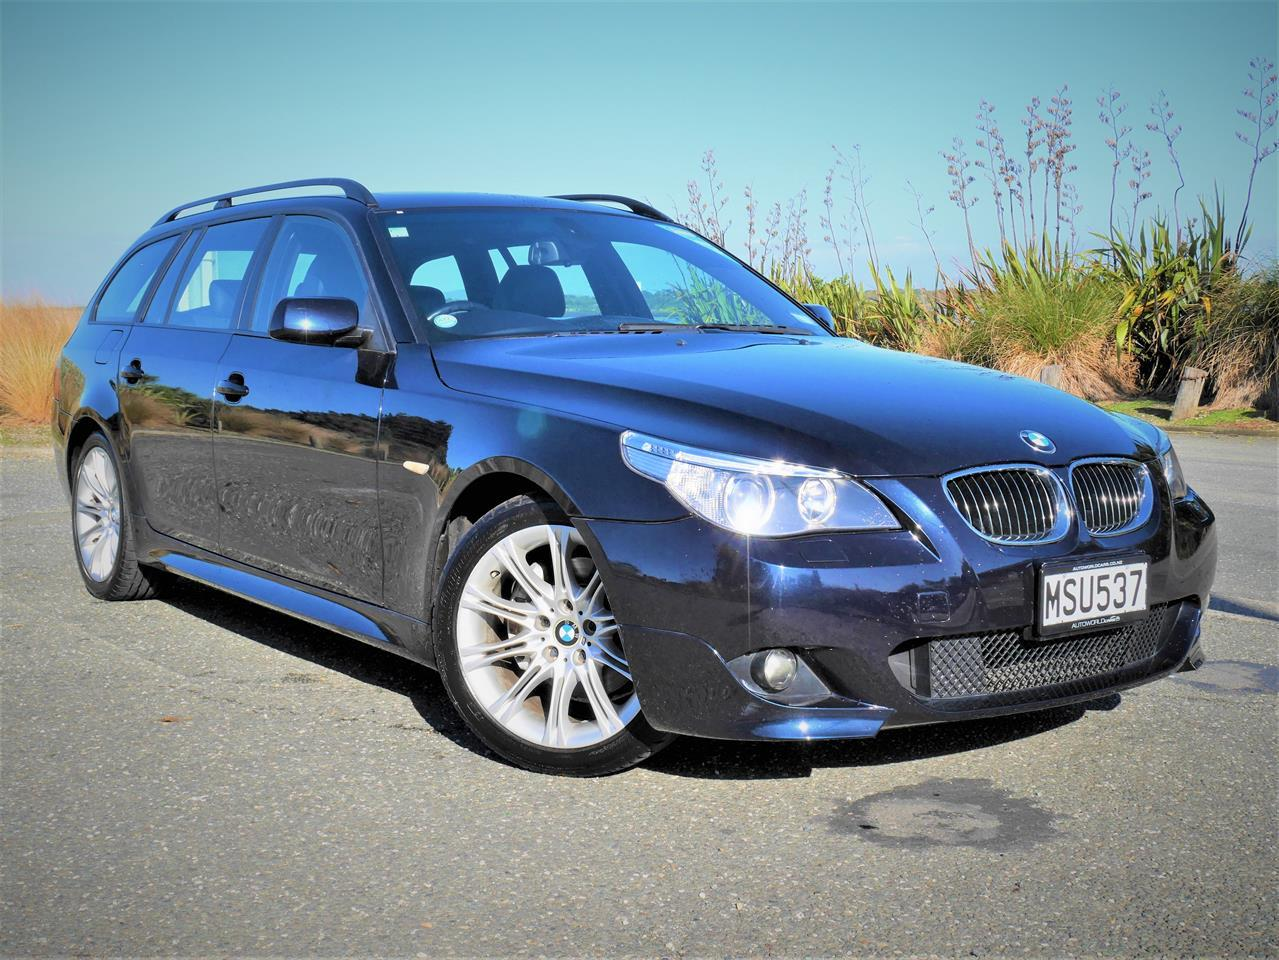 image-0, 2006 BMW 525i Touring M Sports at Invercargill